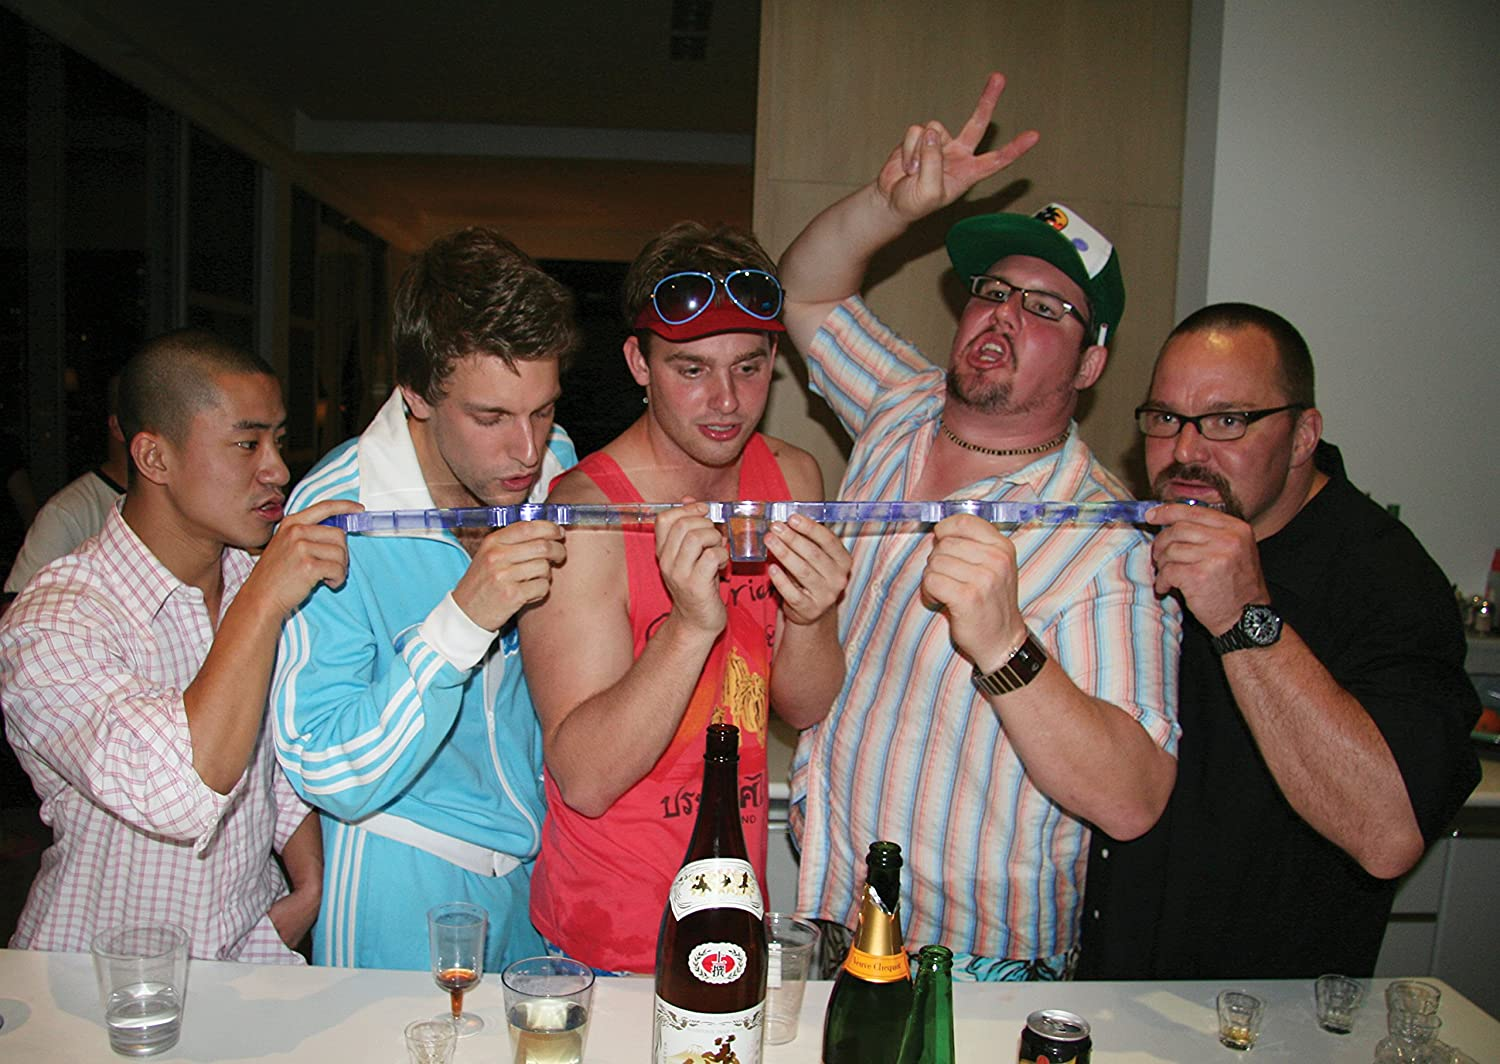 Includes Four Glasses and Three Posts Barbuzzo Party Shot Glasses Take Shots of Your Favorite Beverage with Your Three Favorite Friends